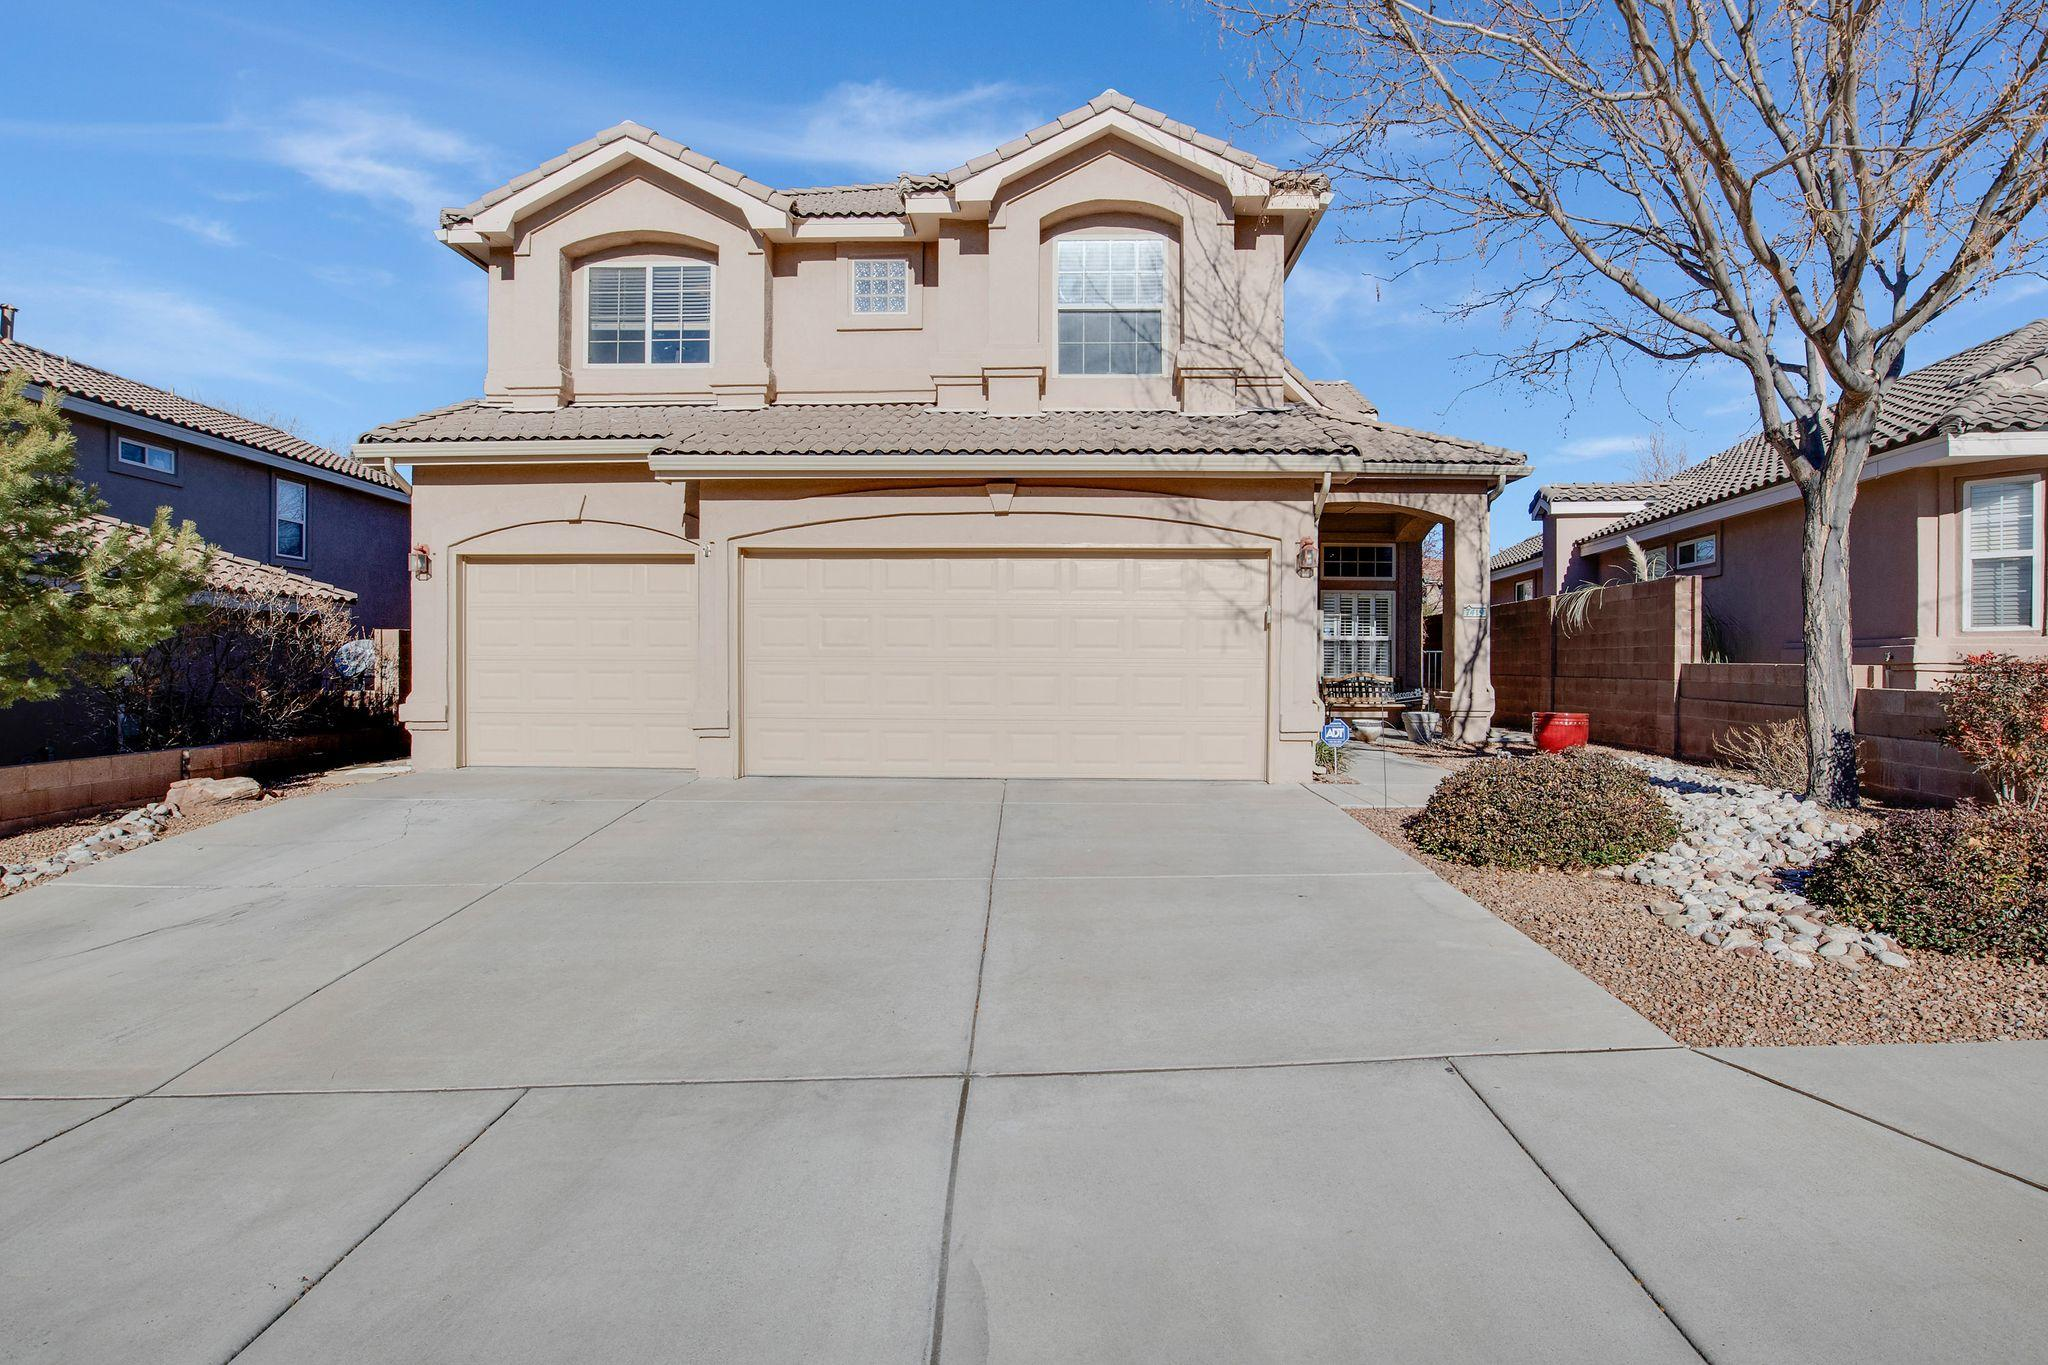 Great Location! Hard to find 5 Bedroom, 3 Bath, 3 Car Garage, One-owner home in Desert Ridge Trails! Upgrades throughout! Two Downstairs living areas, Coffered 9' Ceilings, Kiva fireplace, Engineered hard wood floors, Plantation Shutters, Custom paint. Eat-in Kitchen, stainless steel appliances, granite, oversized sink, pantry & breakfast bar. Downstairs bedroom & 3/4 bath. Enormous Master Bedroom with Views from Balcony, Seating area, 6' Jetted Tub, Separate Shower, Newer Tile, Dbl Sinks, Walk-in Closet. Three additional large bedrooms plus full bath, small loft area & laundry upstairs. Don't miss the backyard's Pergola, water feature, Aspen trees with flower garden, Cherry tree, lighting, grass with sprinklers, cobblestone seating & much more! Close to a beautiful park & great schools!